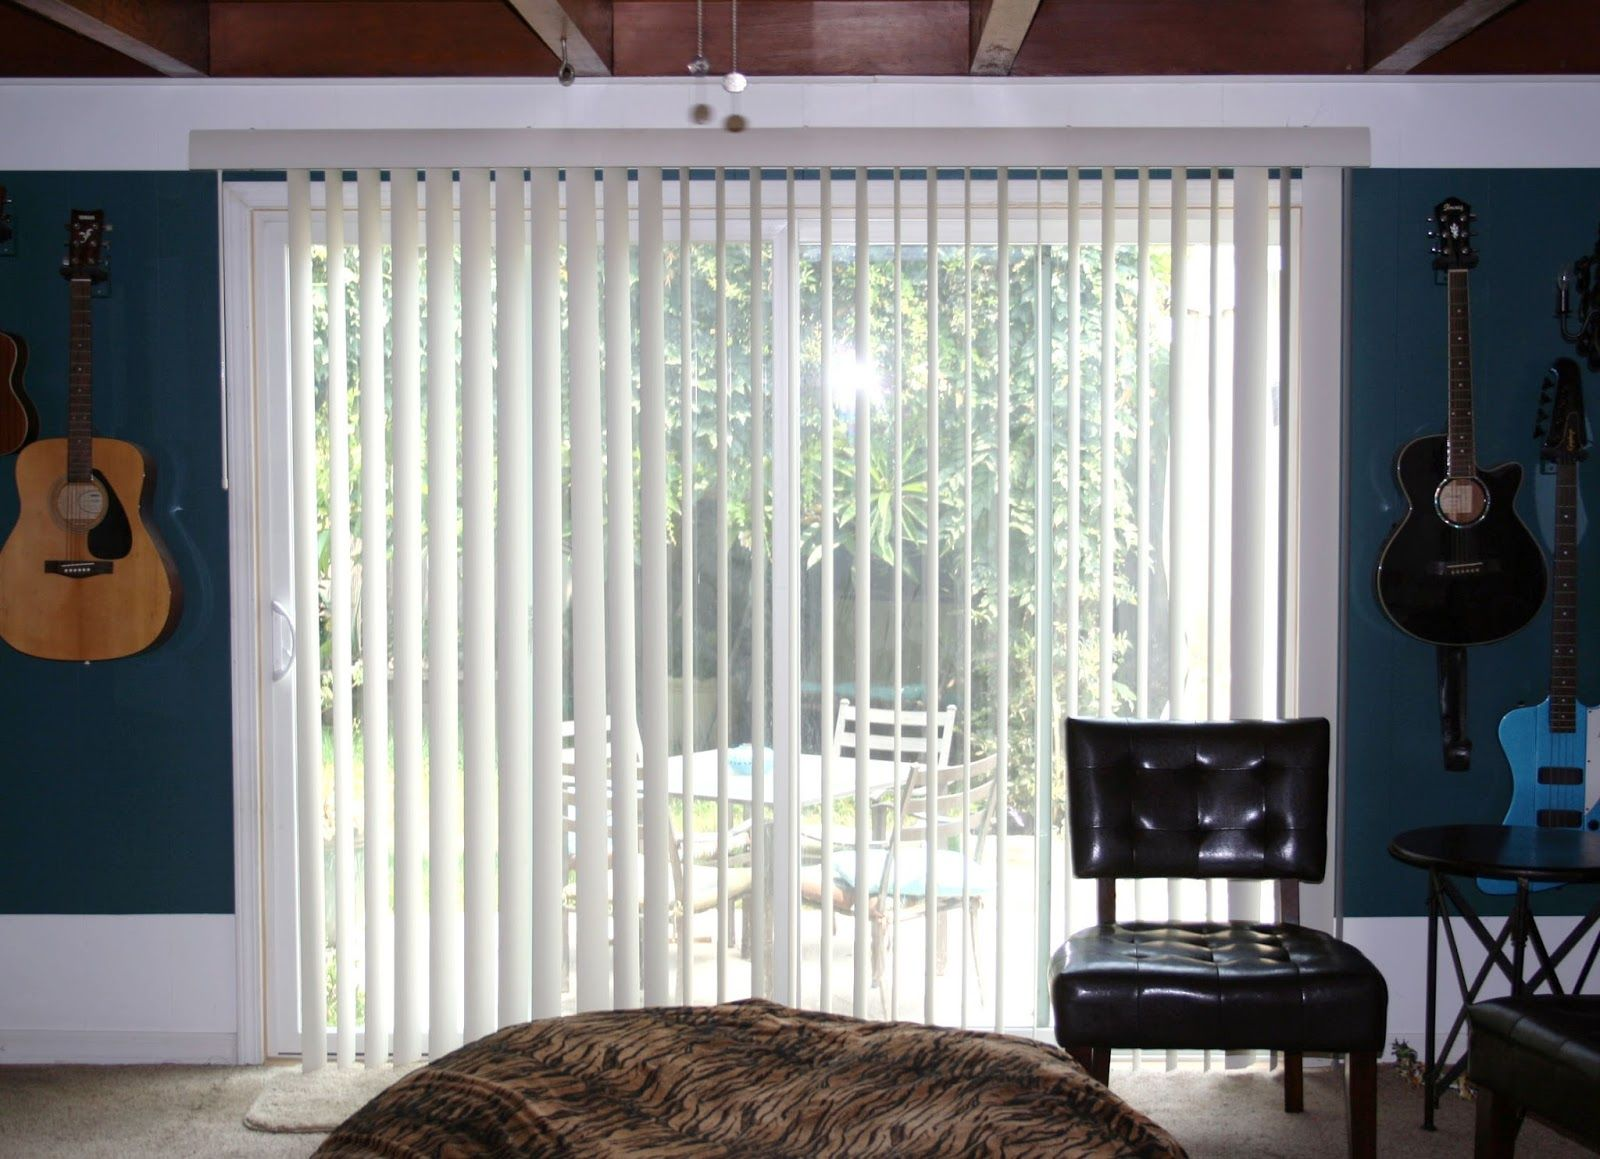 Hanging Curtains On A Vertical Blind Track Creating A